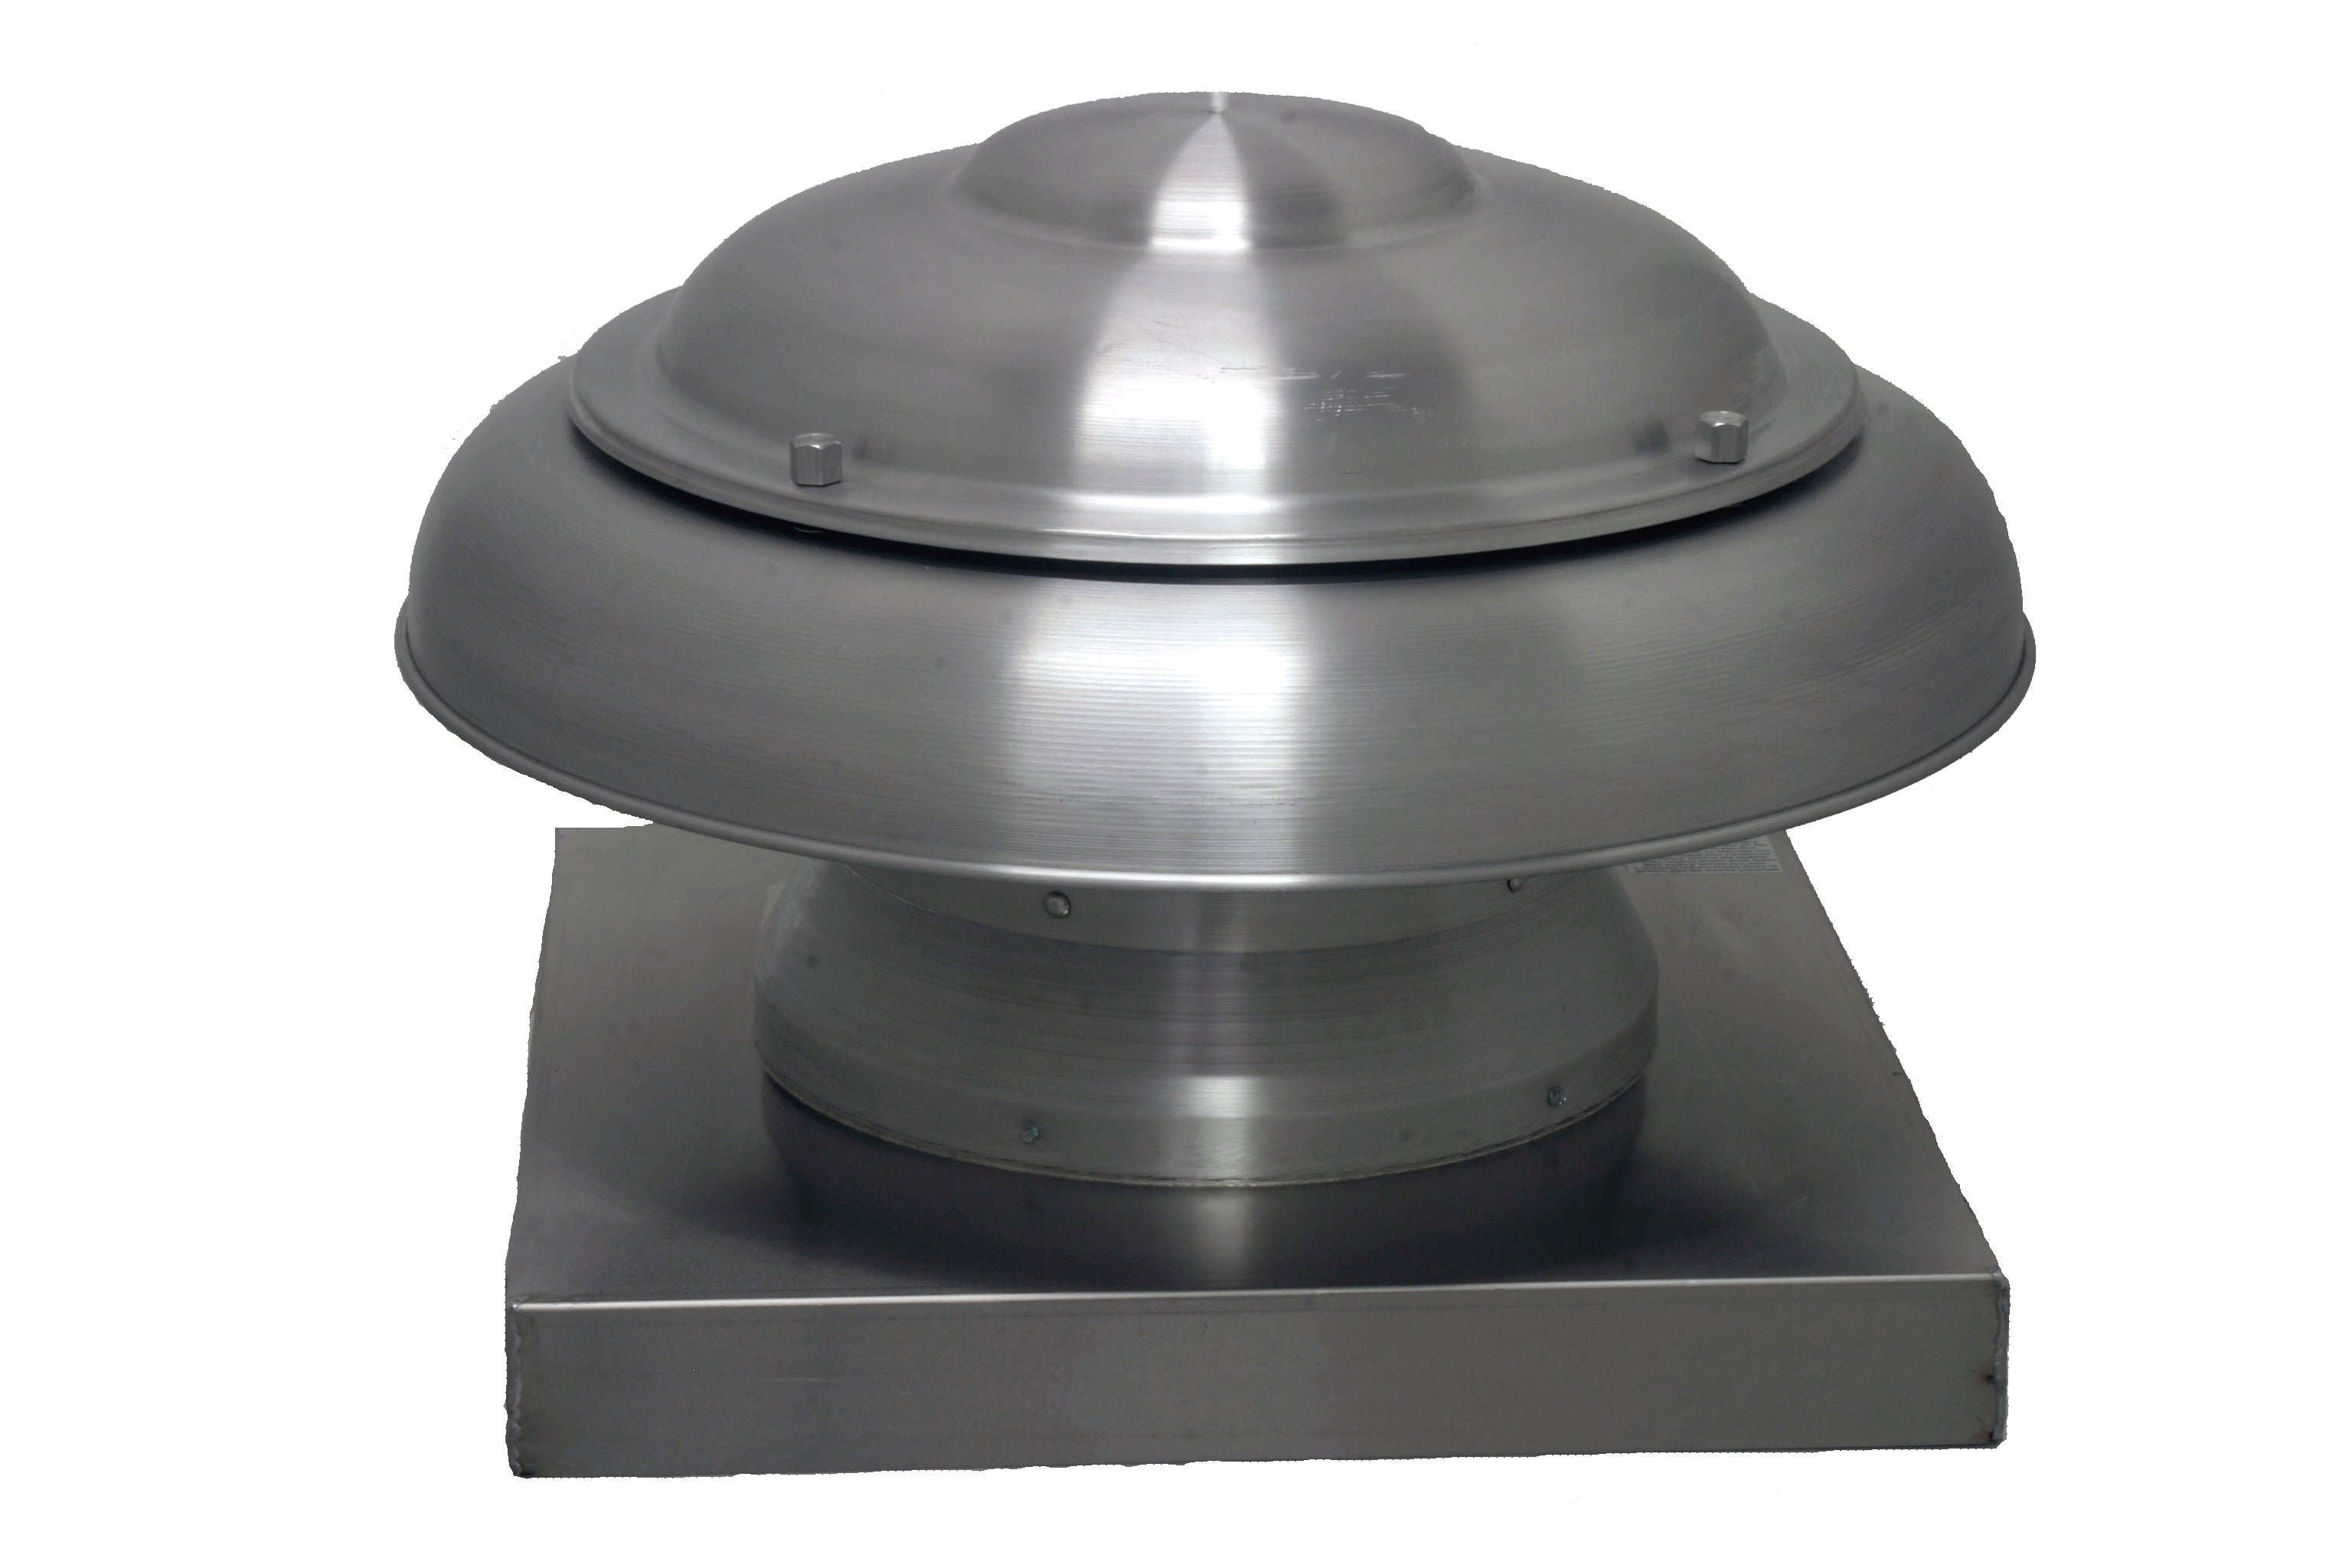 intake-supply-air-fans-aluminum-roof-supply-fans.jpg